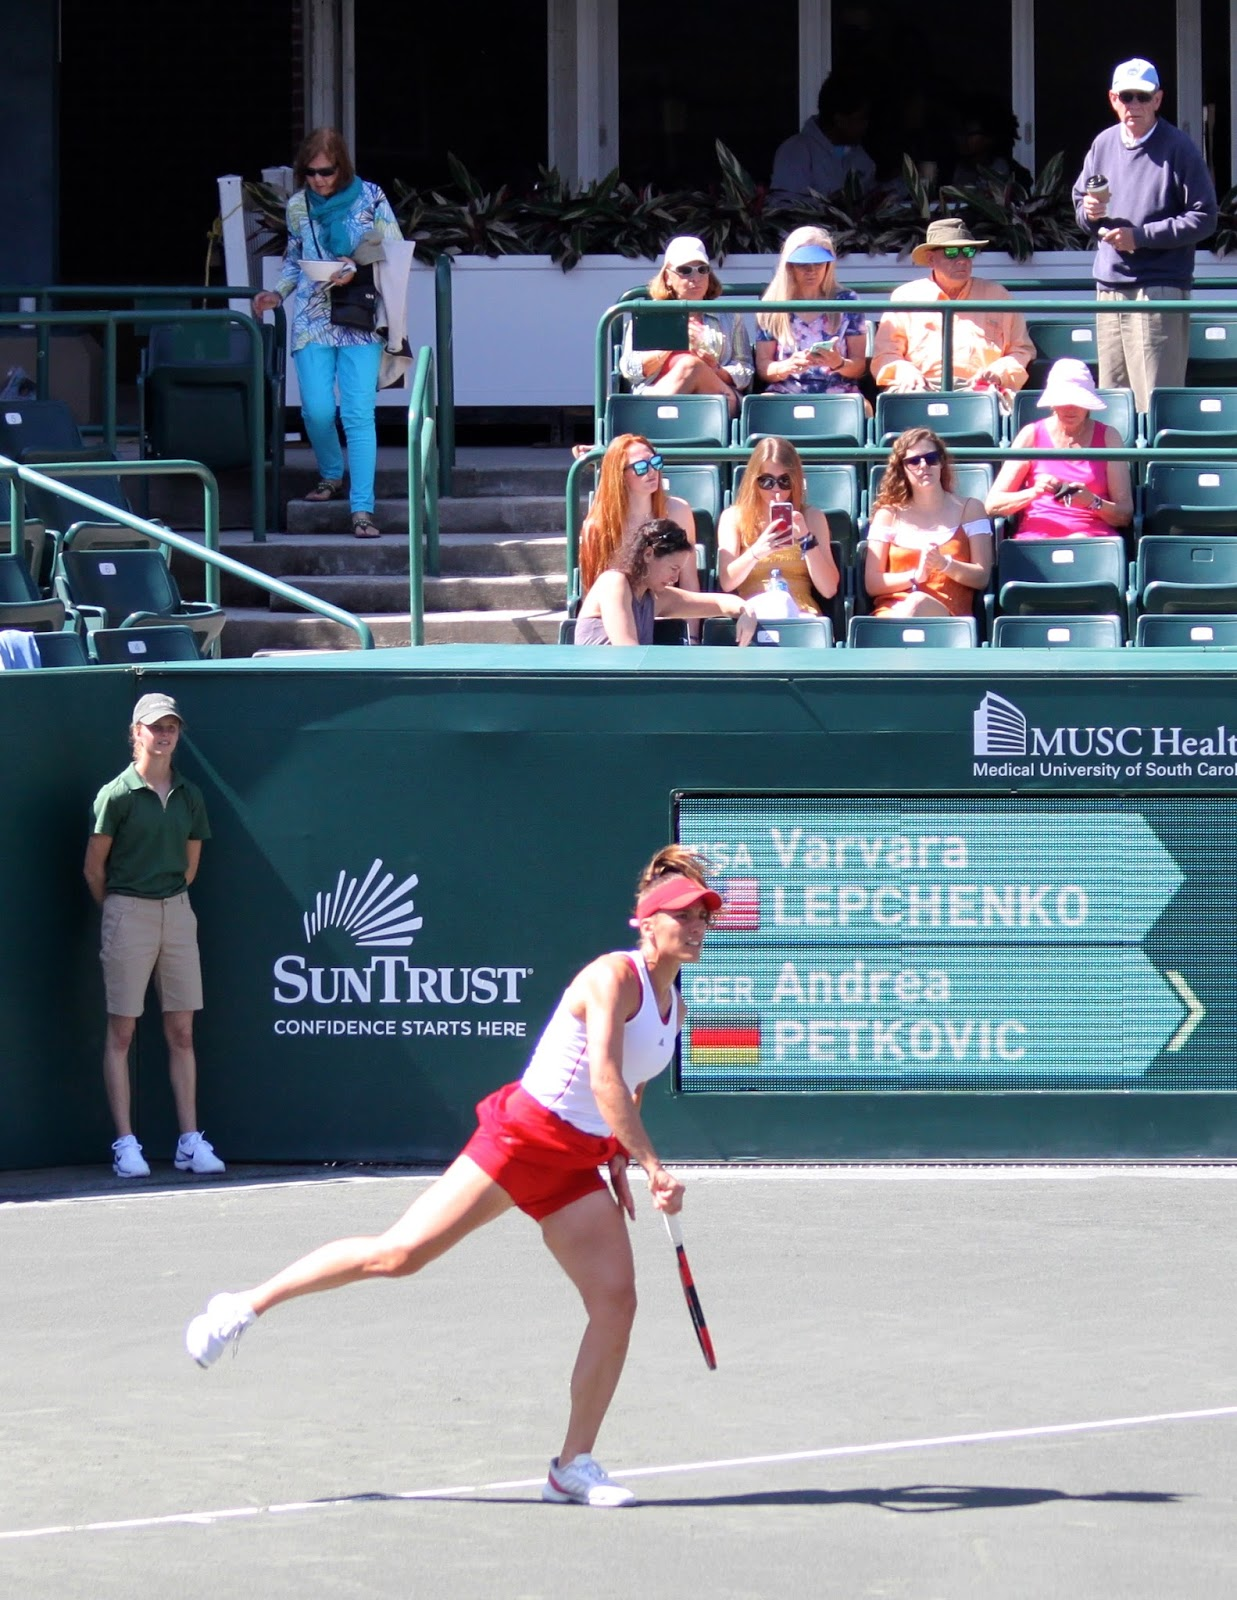 lowcountry outdoors: 2018 volvo car open - tennis begins